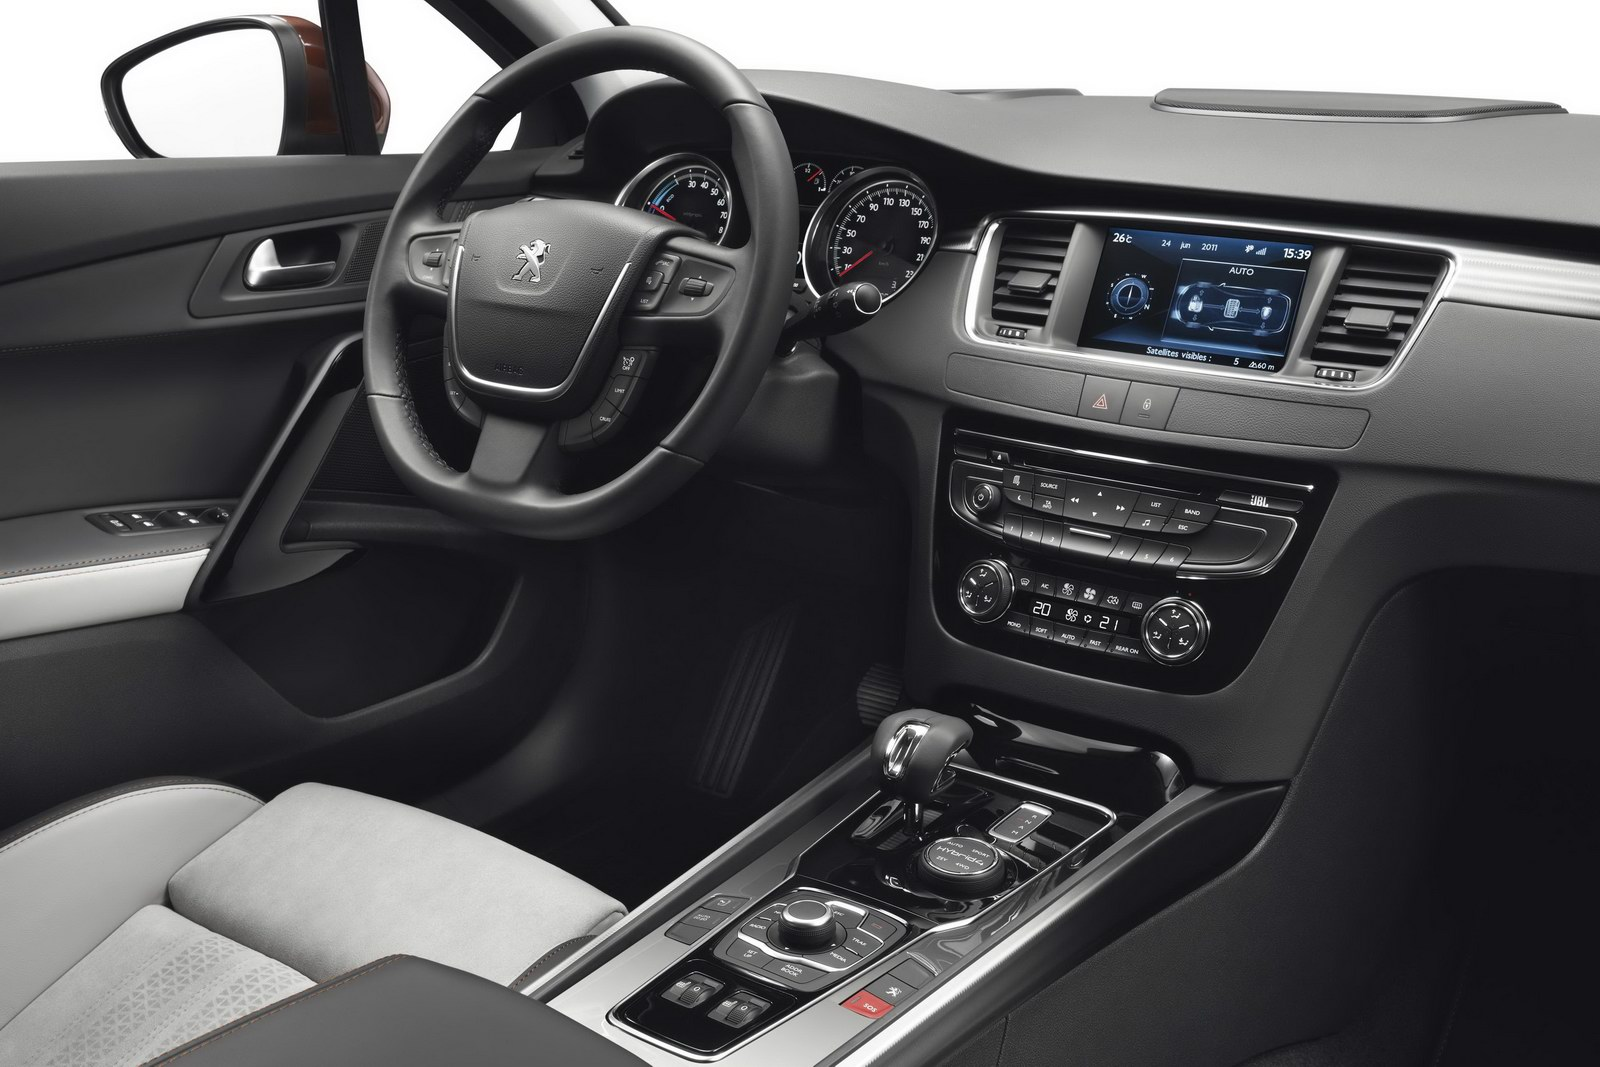 2012 Peugeot 508 RXH diesel hybrid 508 RXH Diesel   Electric Hybrid Crossover with Compact Technical Features